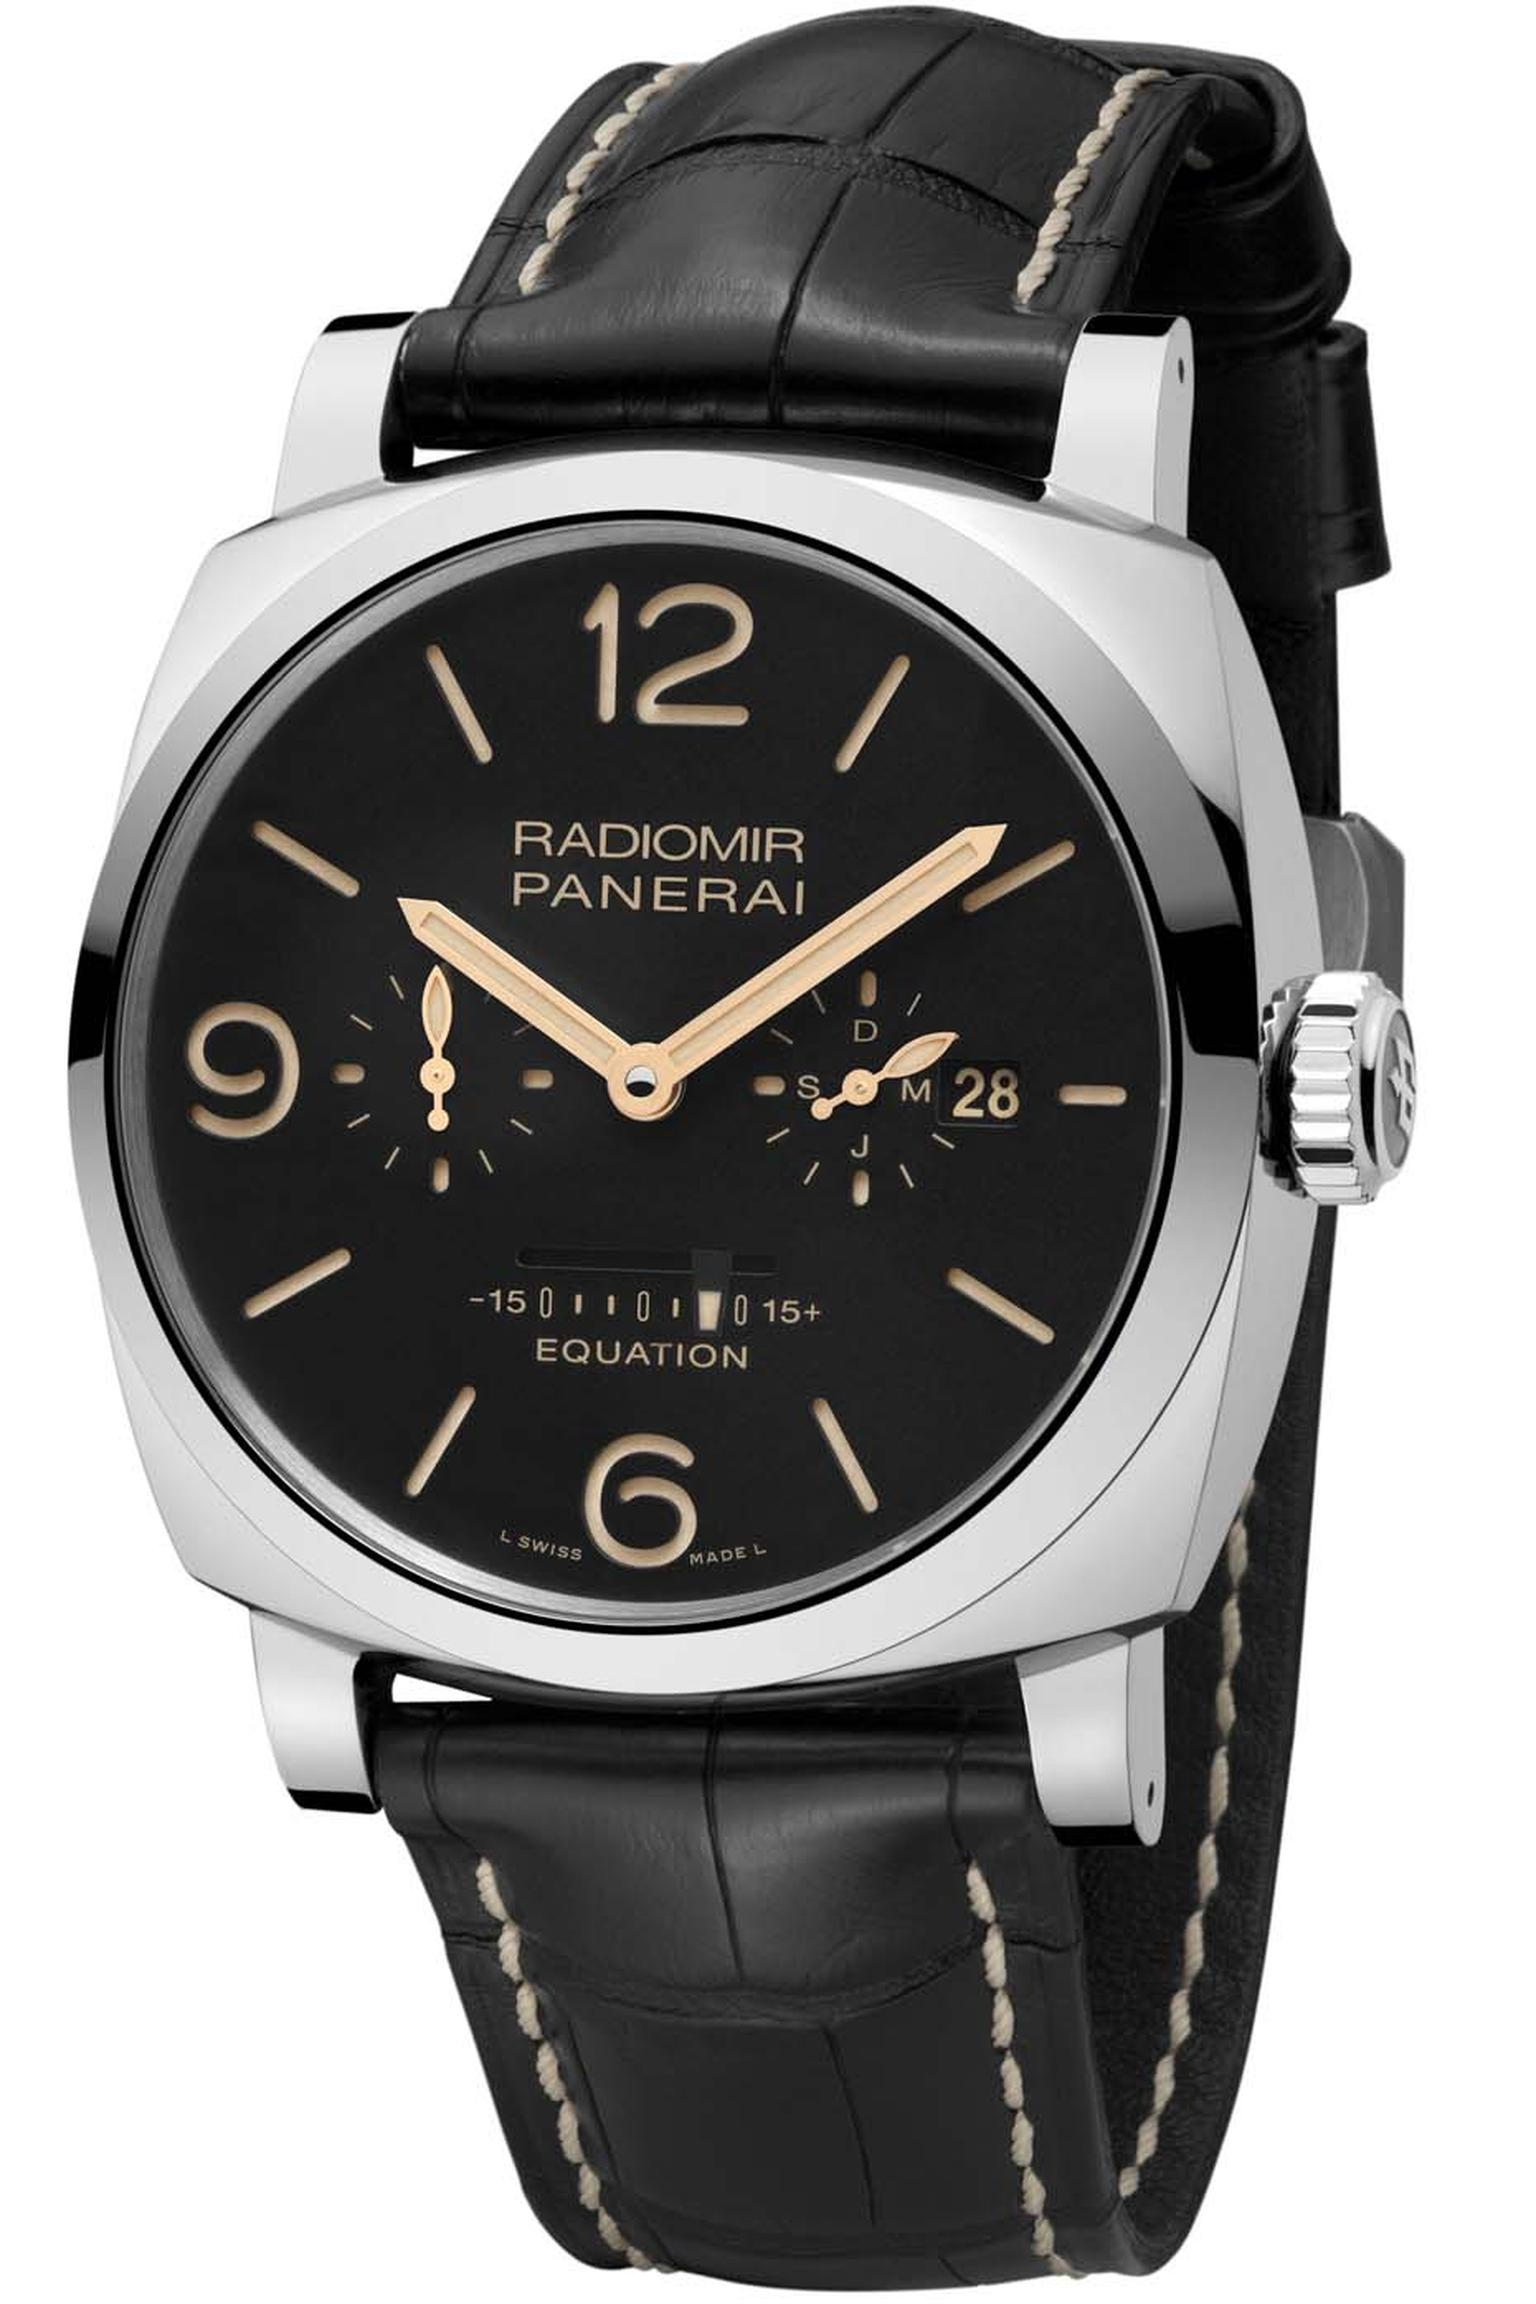 Panerai Radiomir 1940 Equation of Time model comes in a 48mm stainless steel cushion-shaped case and, in addition to the equation of time indicator, features a date window and month indicator at 3 o'clock, a small seconds counter at 9 o'clock, and a power